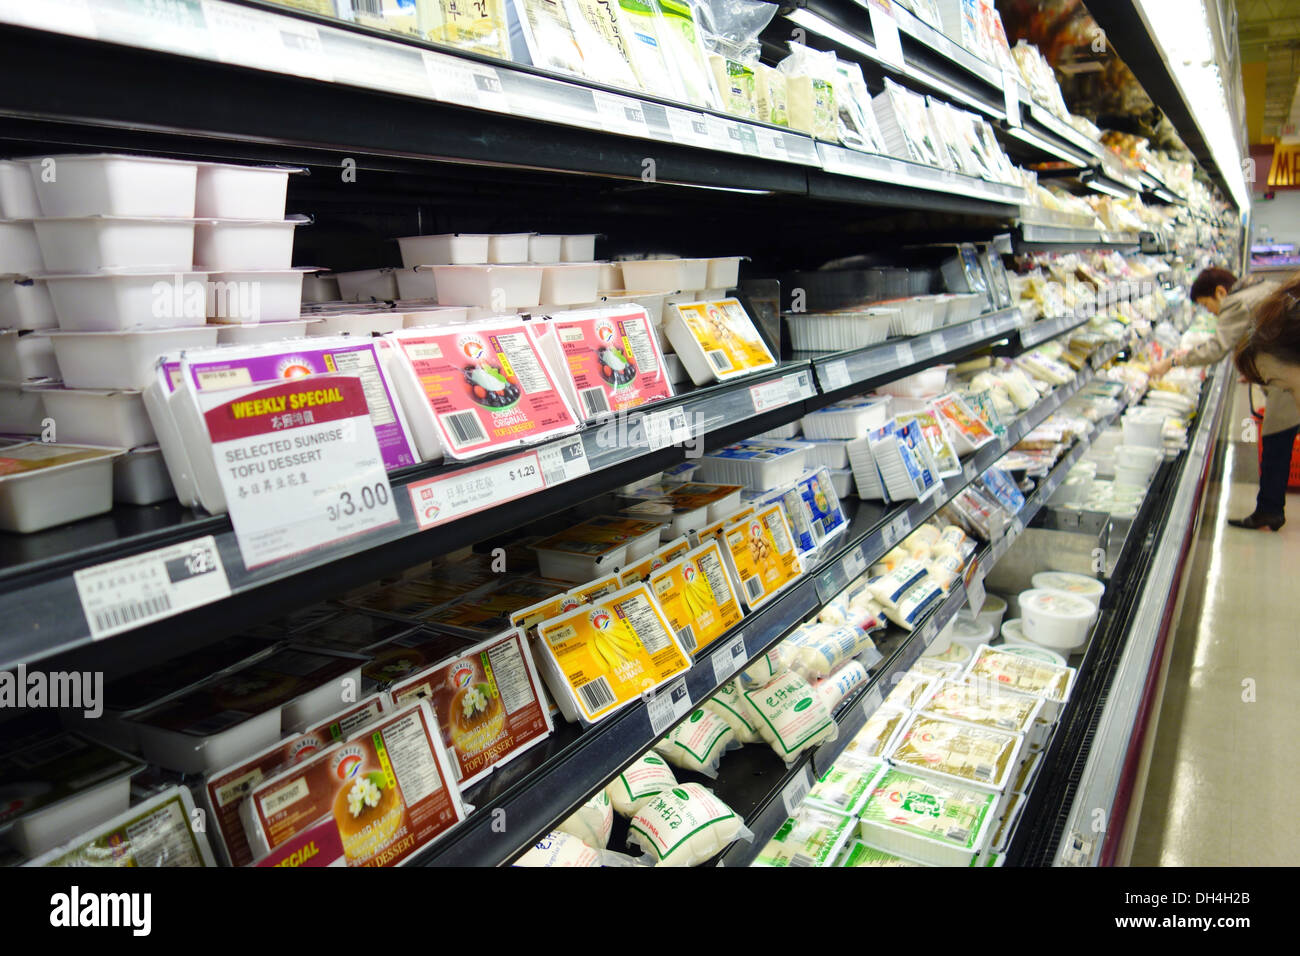 cc1668c285a Supermarket shelf stocked with products in Toronto, Canada Stock ...